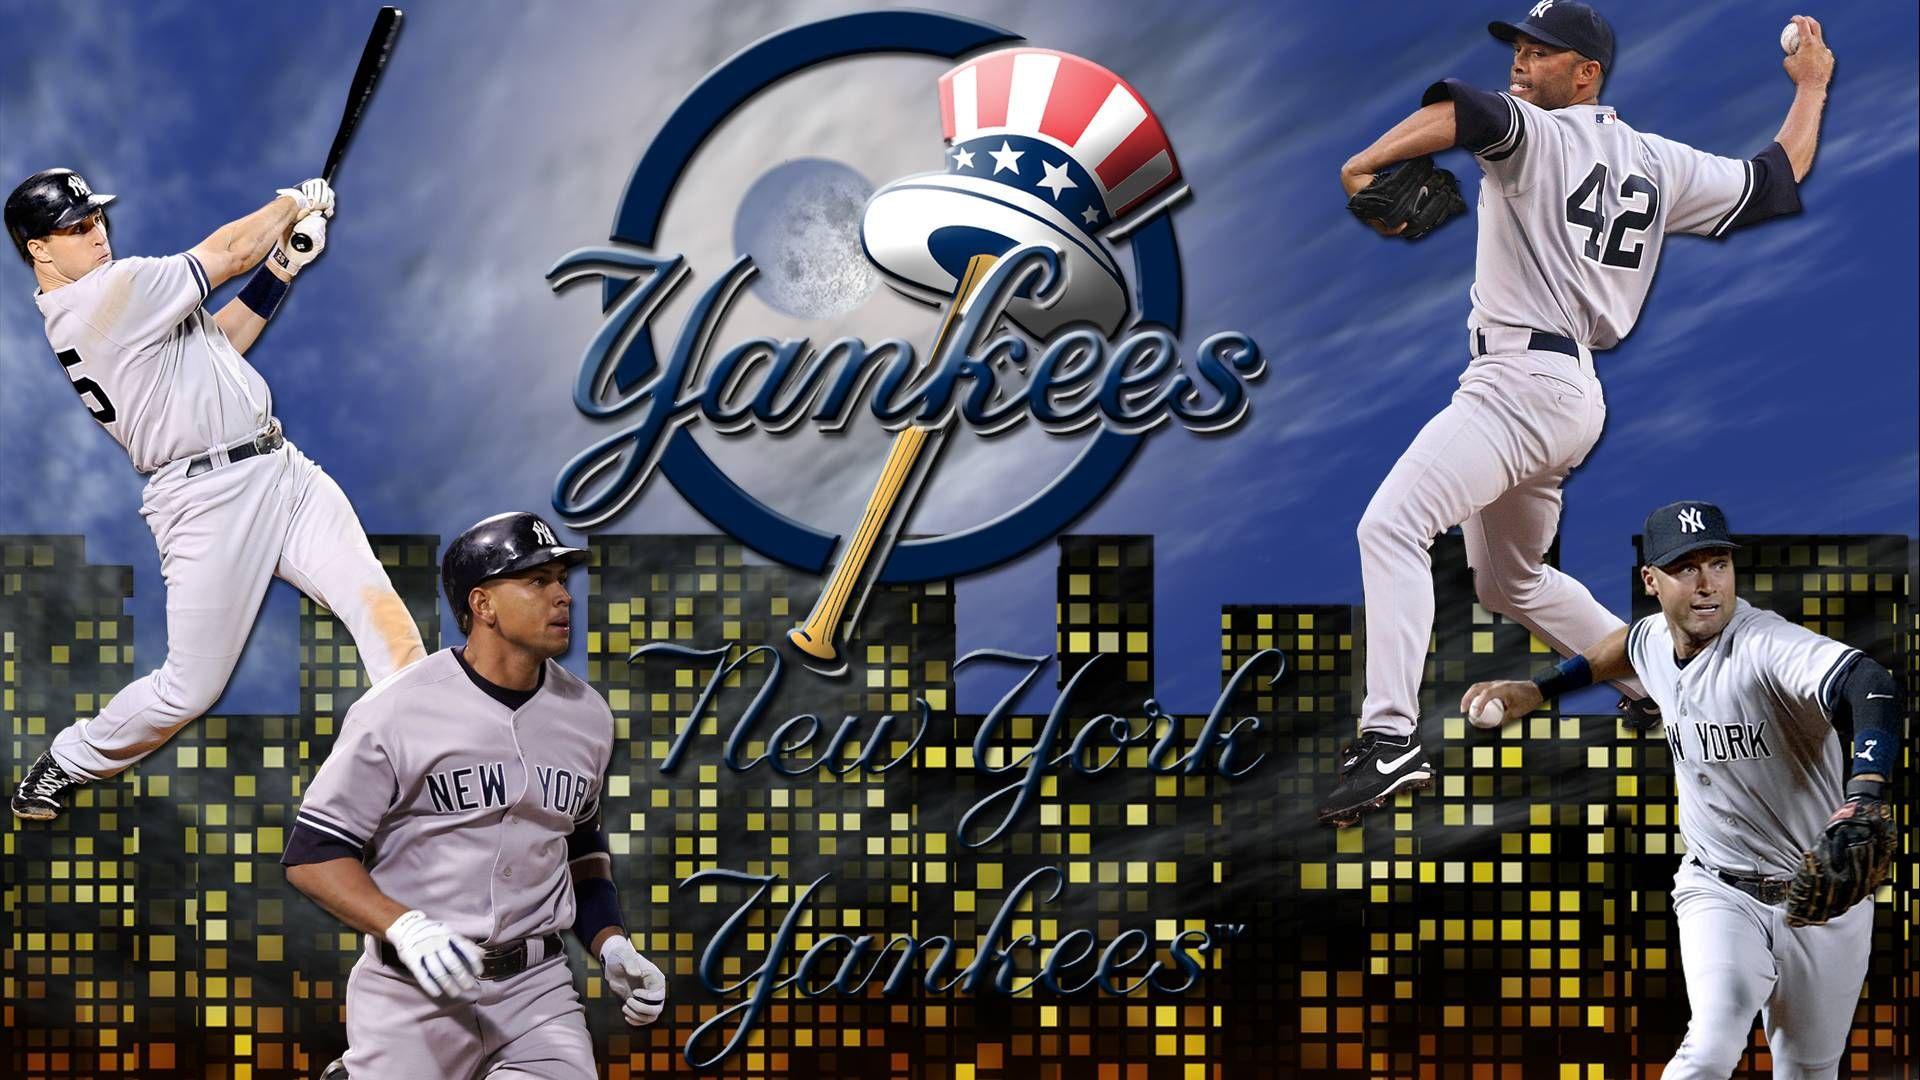 New York Yankees free picture